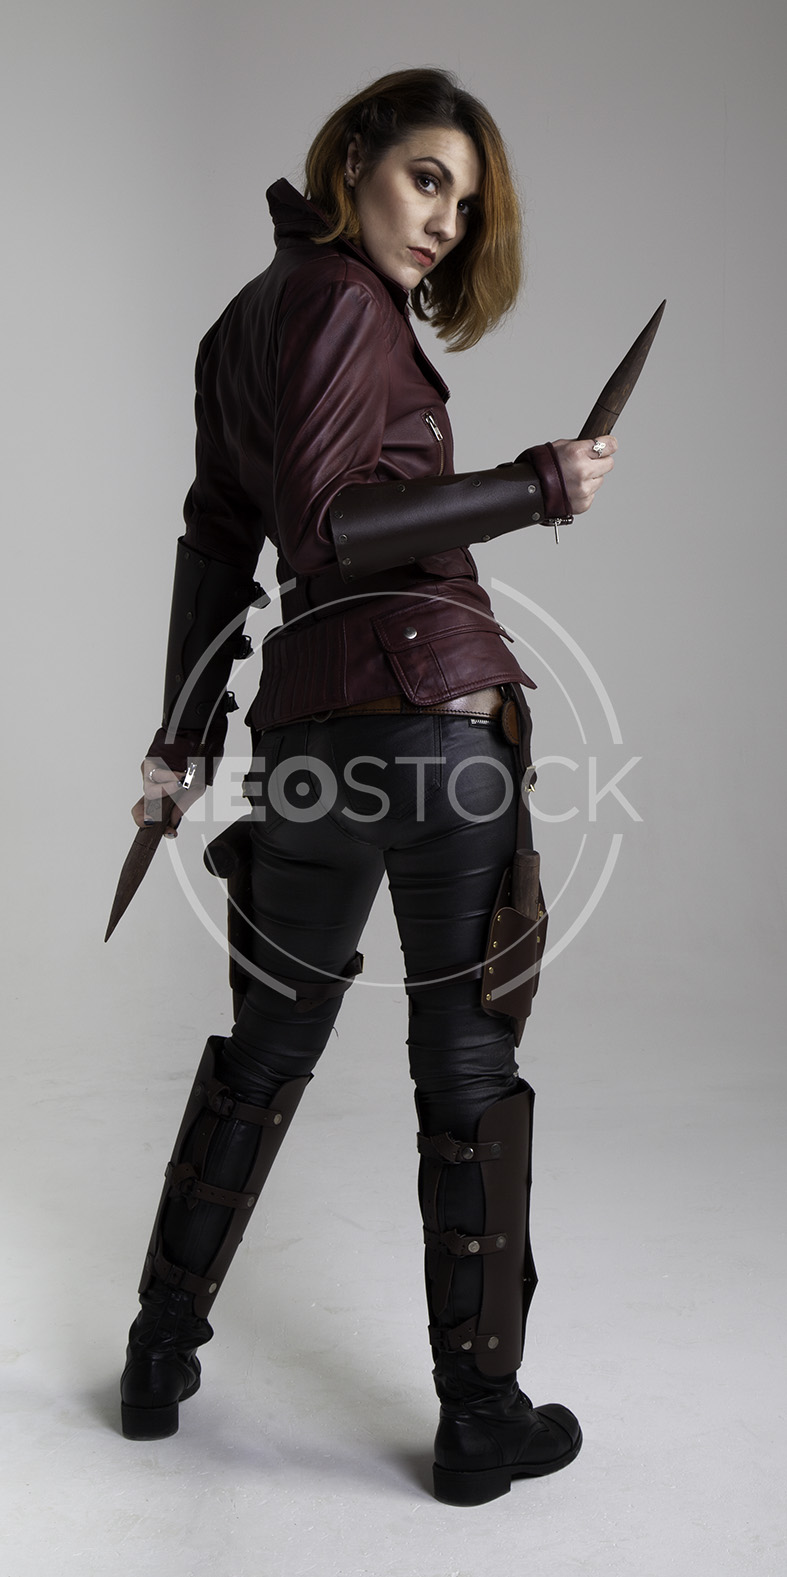 NeoStock - Mandy I, Vampire / Demon Hunter / Van Helsing, Stock Photography